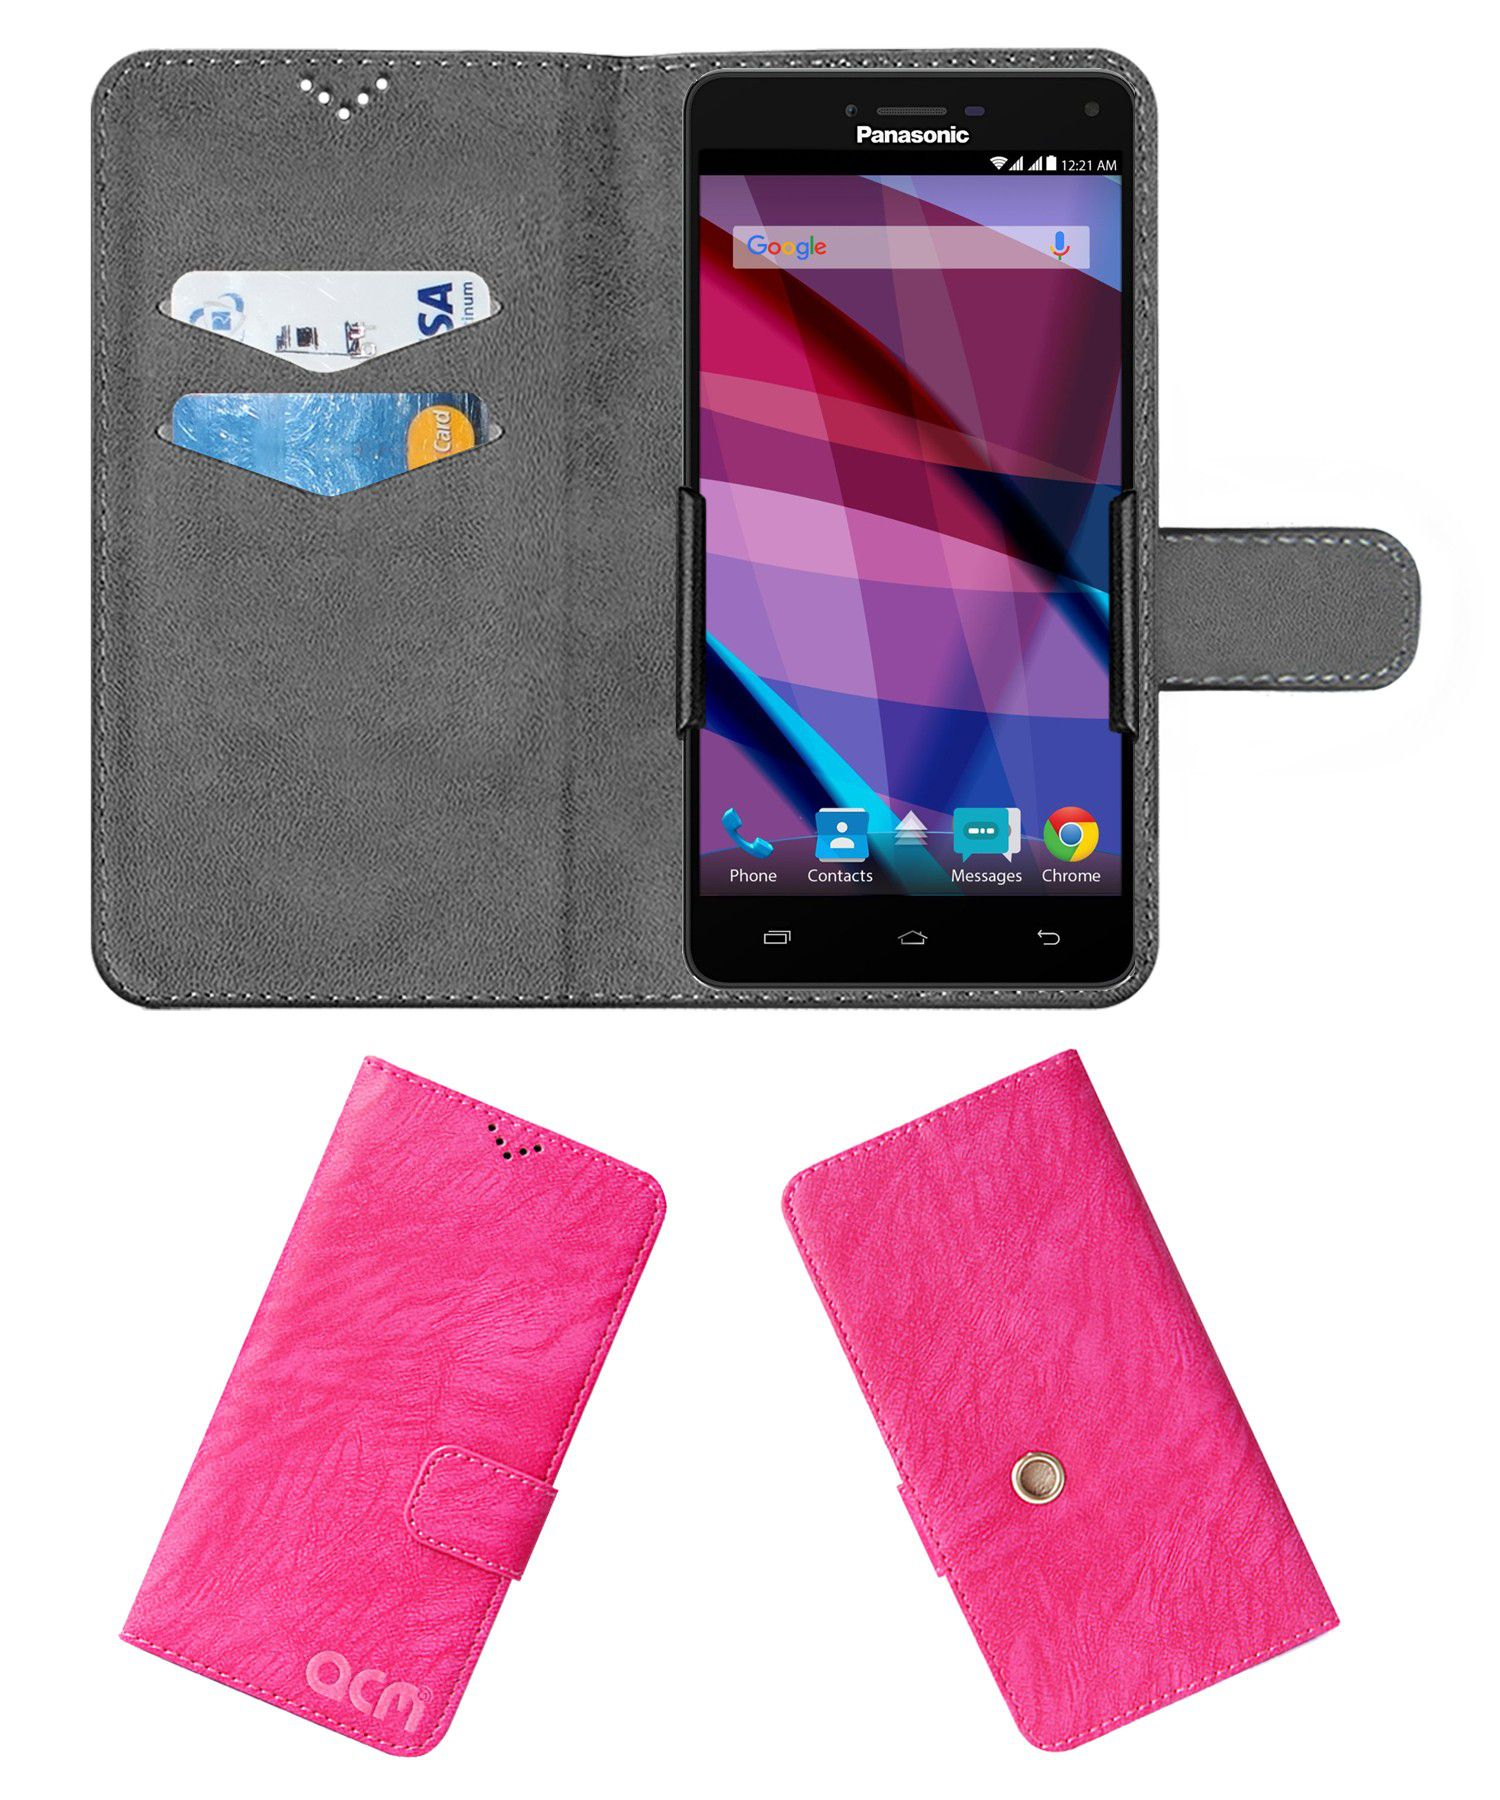 Panasonic Eluga Icon 2 Flip Cover by ACM - Pink Clip holder to hold your mobile securely